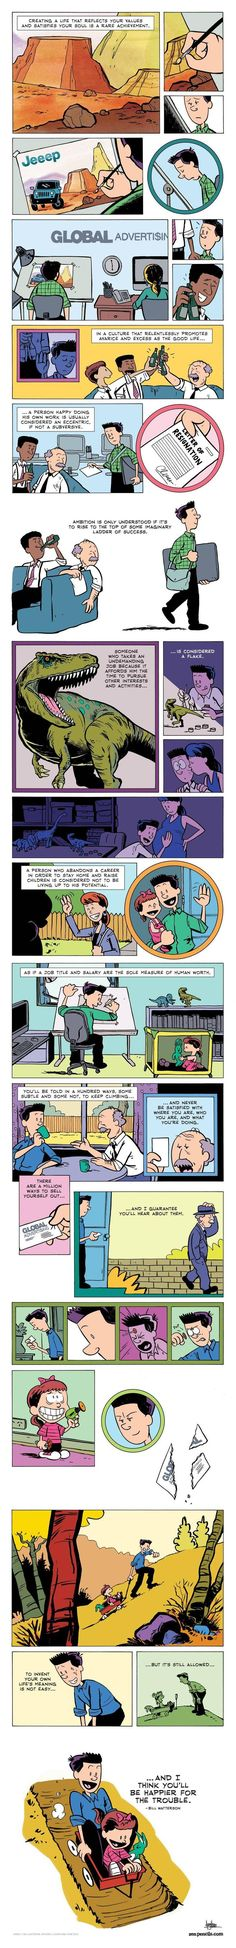 From Bill Watterson. I think this is pretty relevant these days. - Imgur